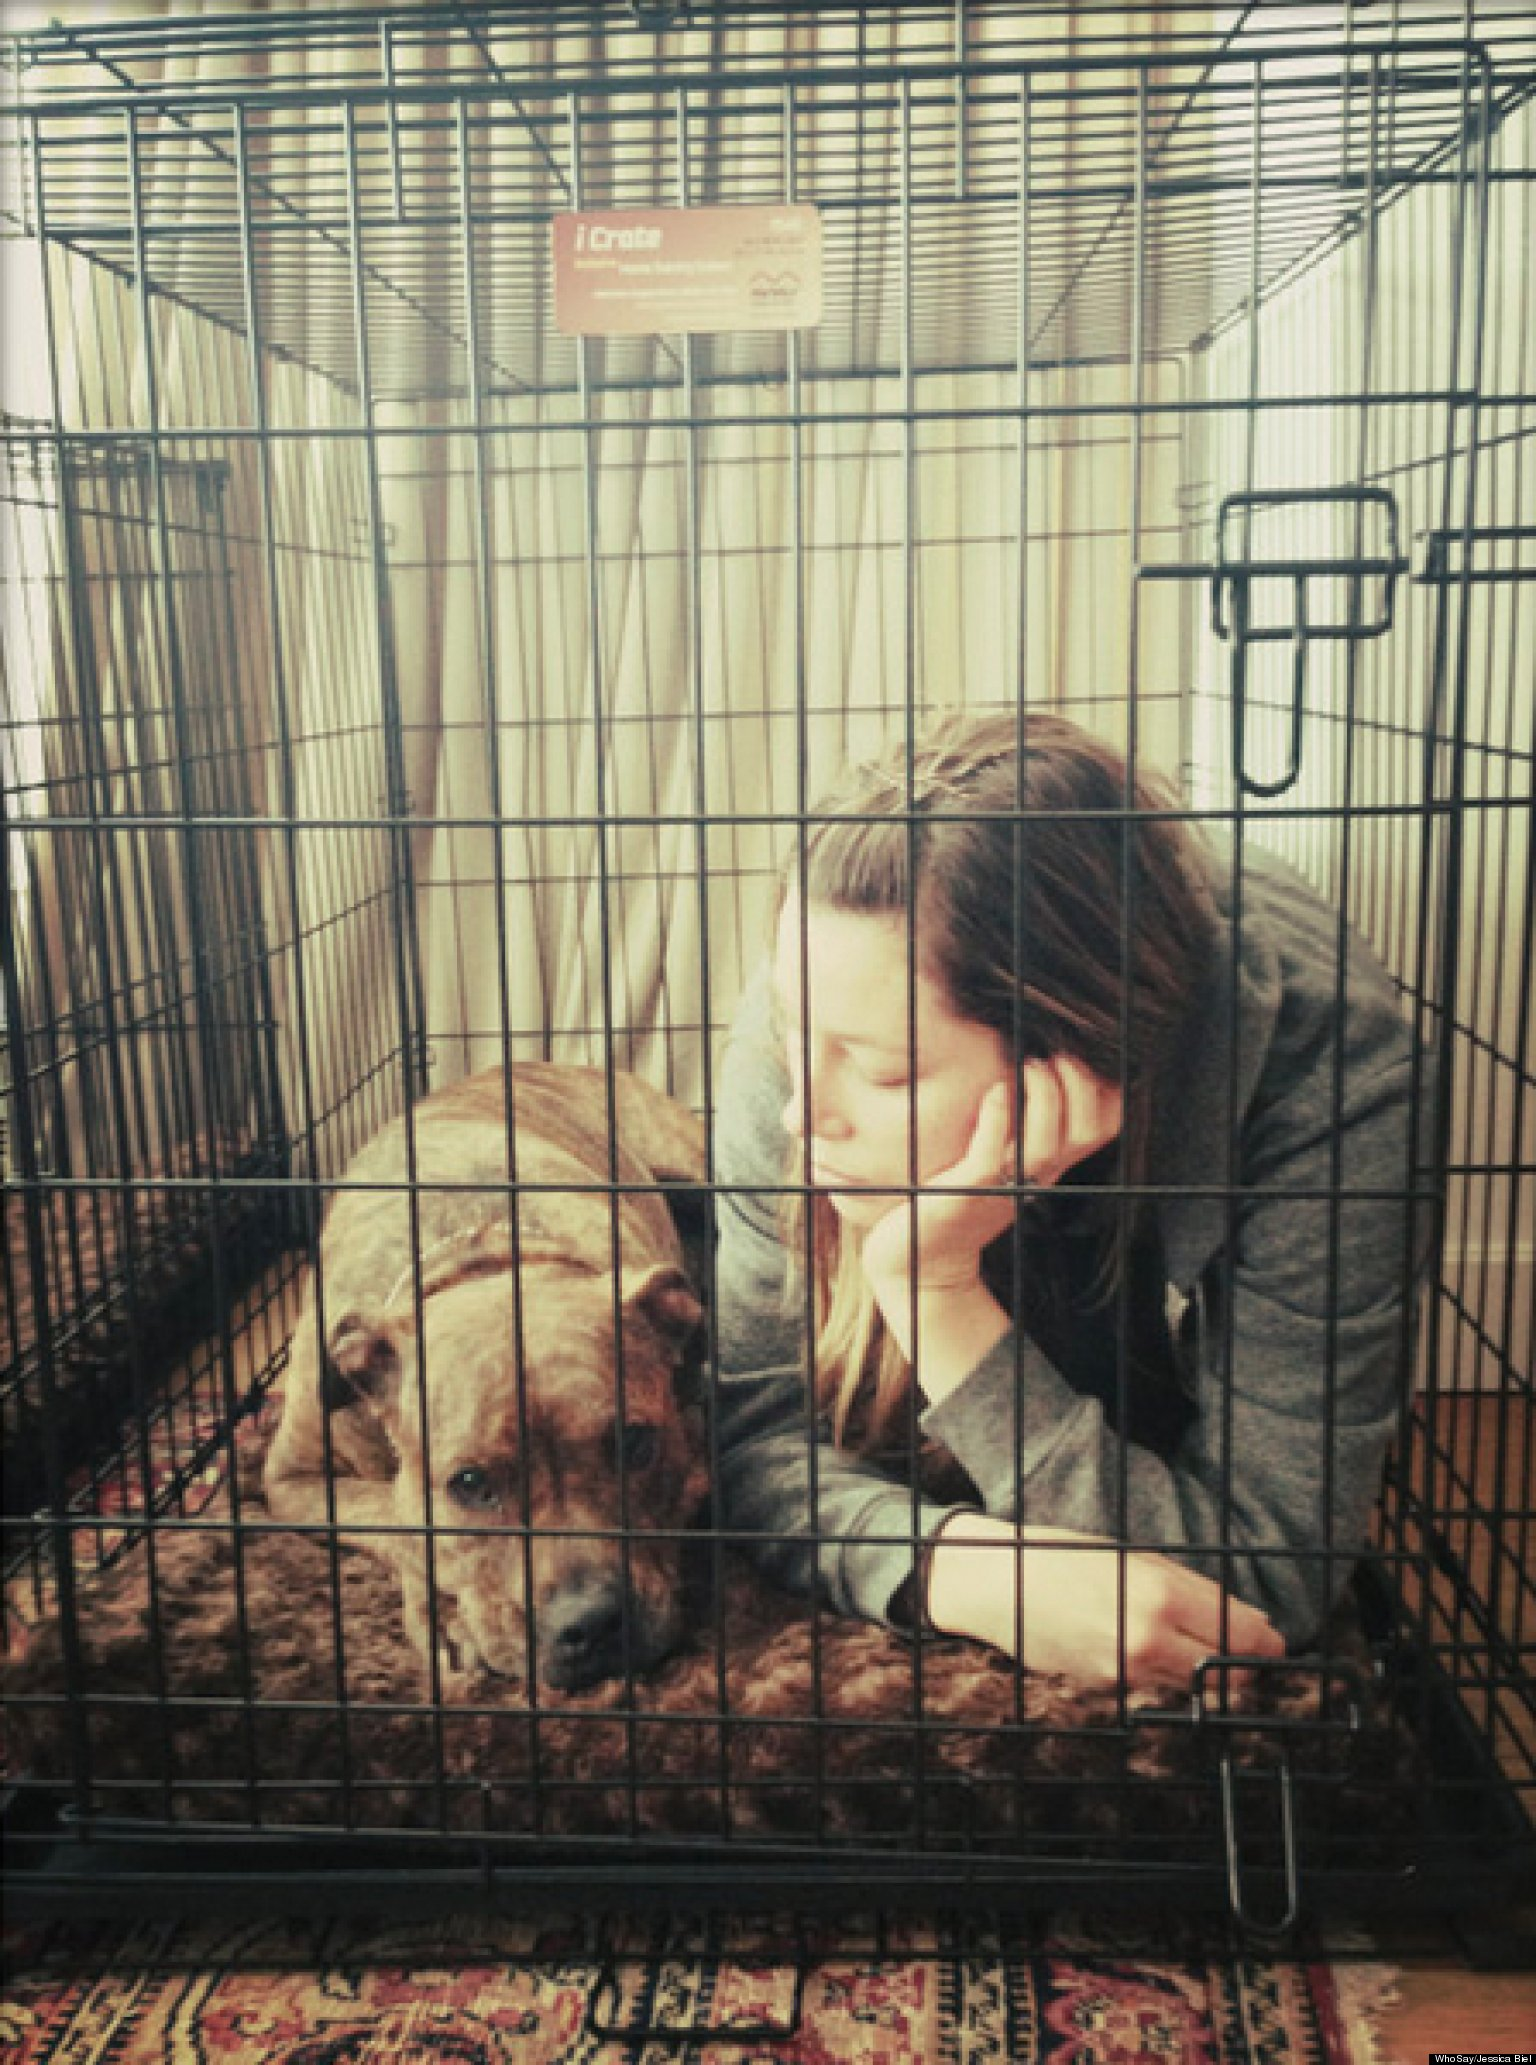 PHOTO: What Is Jessica Biel Doing In A Cage?